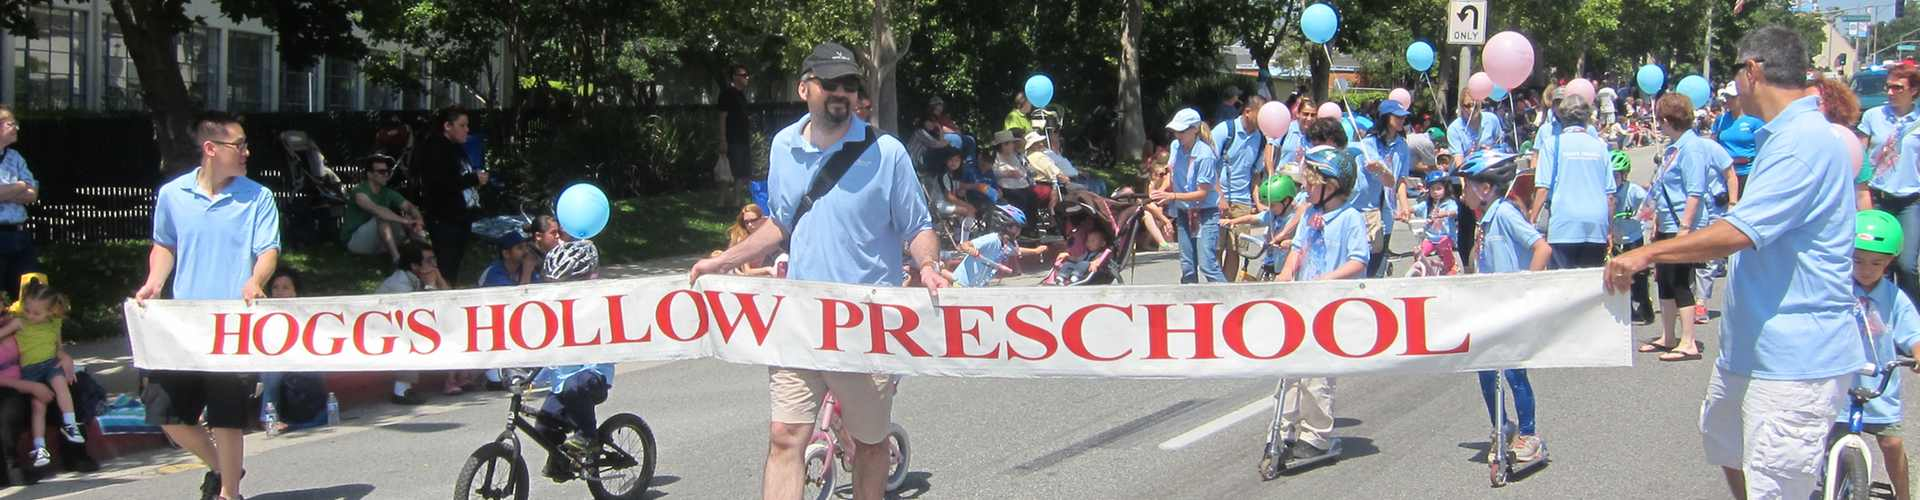 hogg's_hollow_preschool_in_the_memorial_day_parade